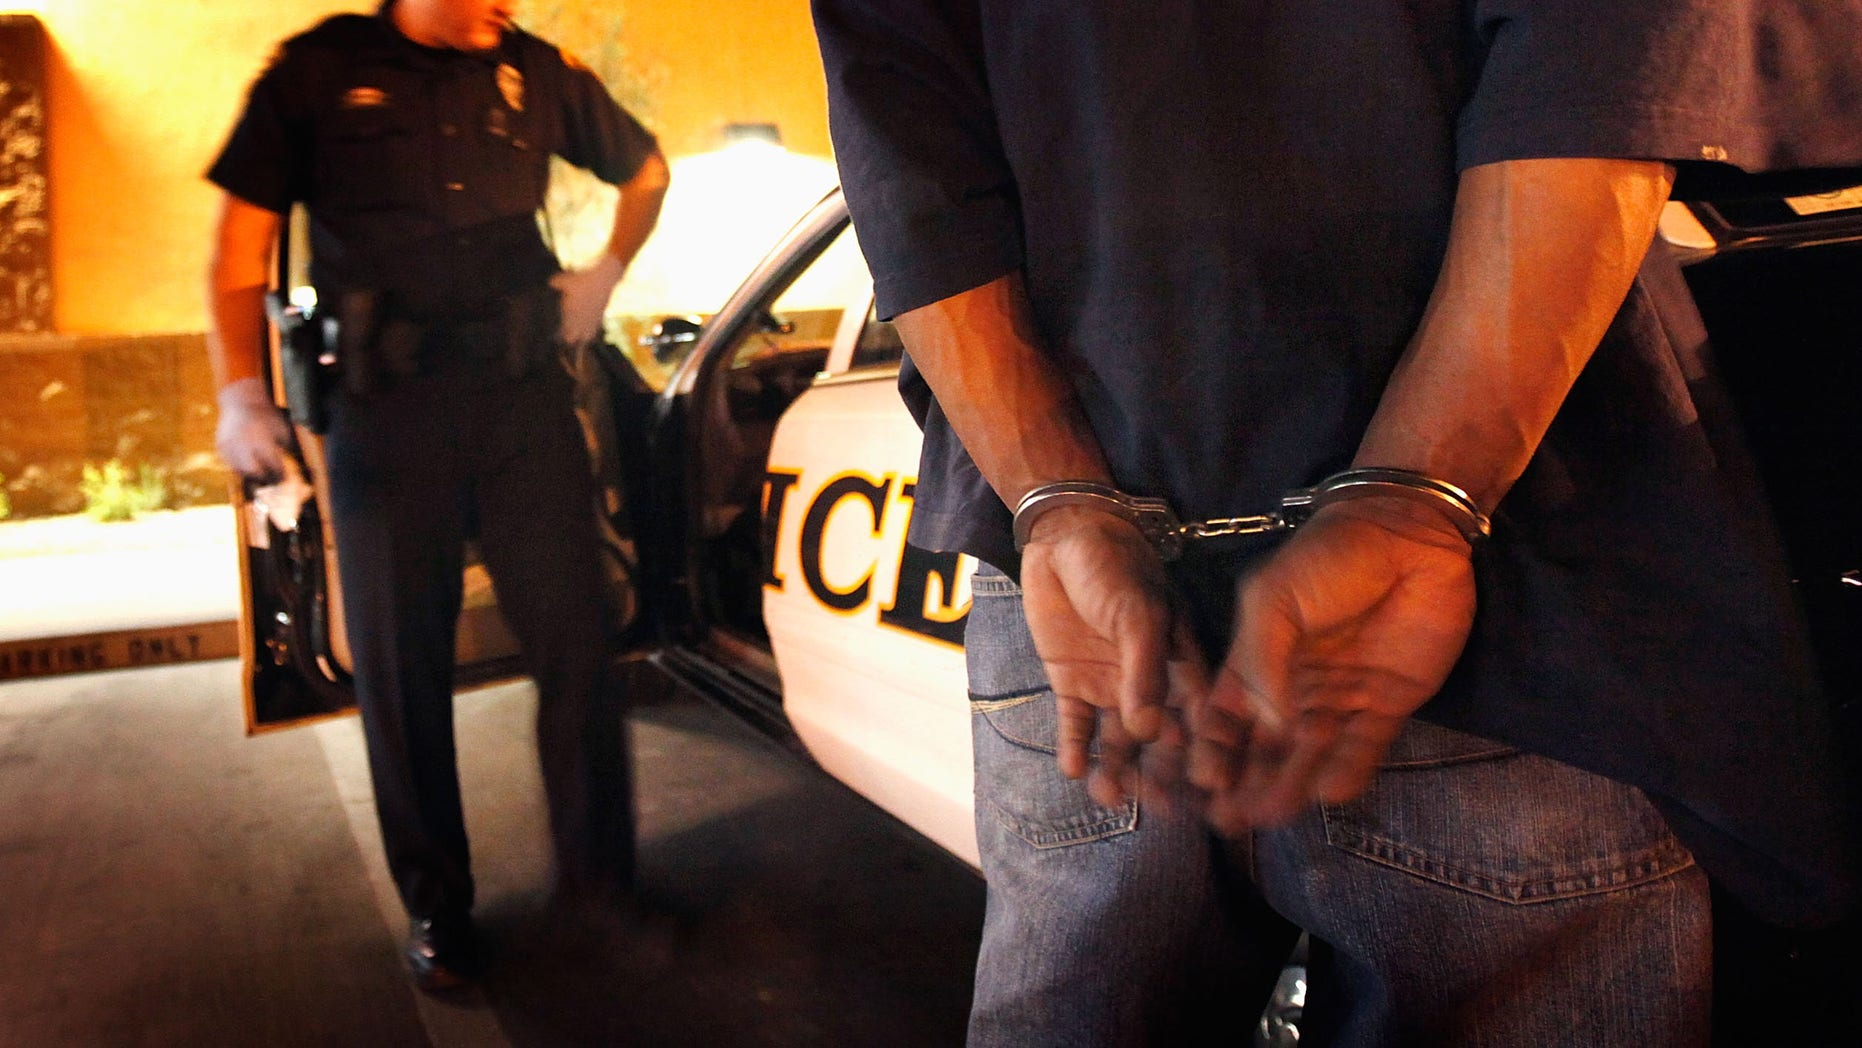 TUCSON, AZ - MAY 29:  Tucson Police Officer Angel Ramirez arrests a man for trespassing May 29, 2010 in Tucson, Arizona. Ramirez works in the city's predominately Hispanic south side. The Tucson Police Department is currently gearing up to begin training its officers on the implementation of the controversial new immigration law SB 1070. Although a Tucson police officer was one of the first to file suit in federal court challenging the new law, most rank and file officers tend to support the legislation while the Arizona Chiefs of Police have criticized it.  (Photo by Scott Olson/Getty Images)